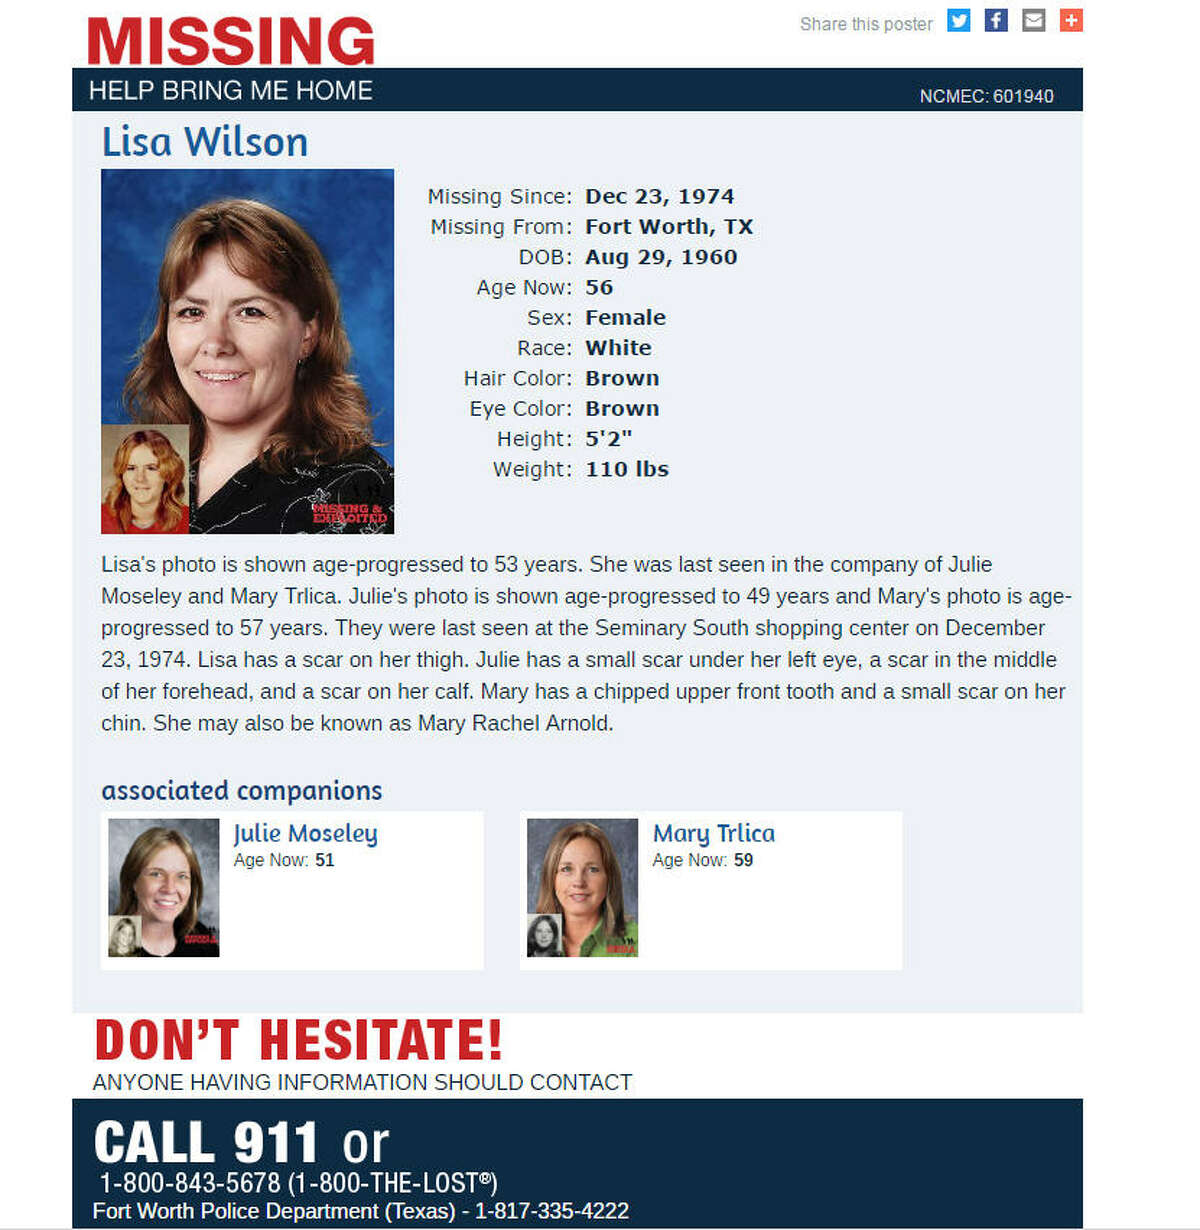 Still missed The missing persons poster for Lisa Wilson, who disappeared from a Fort Worth, Texas, shopping mall in 1974. The photo is her age-progressed. A family is making a new push to solve the mystery of what happened to her and two other girls.